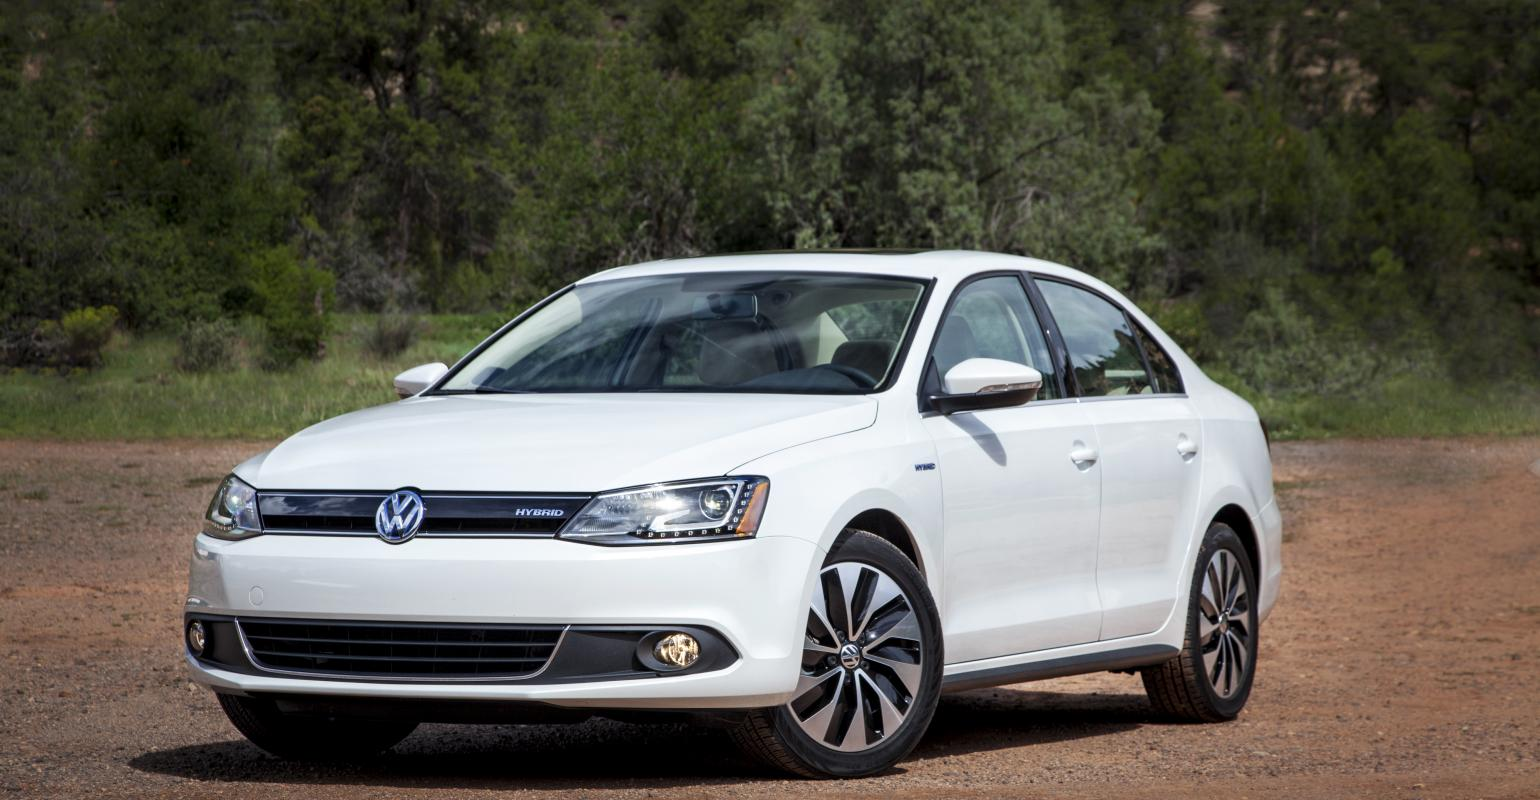 Jetta Hybrid Front End Designed For Better Aerodynamics